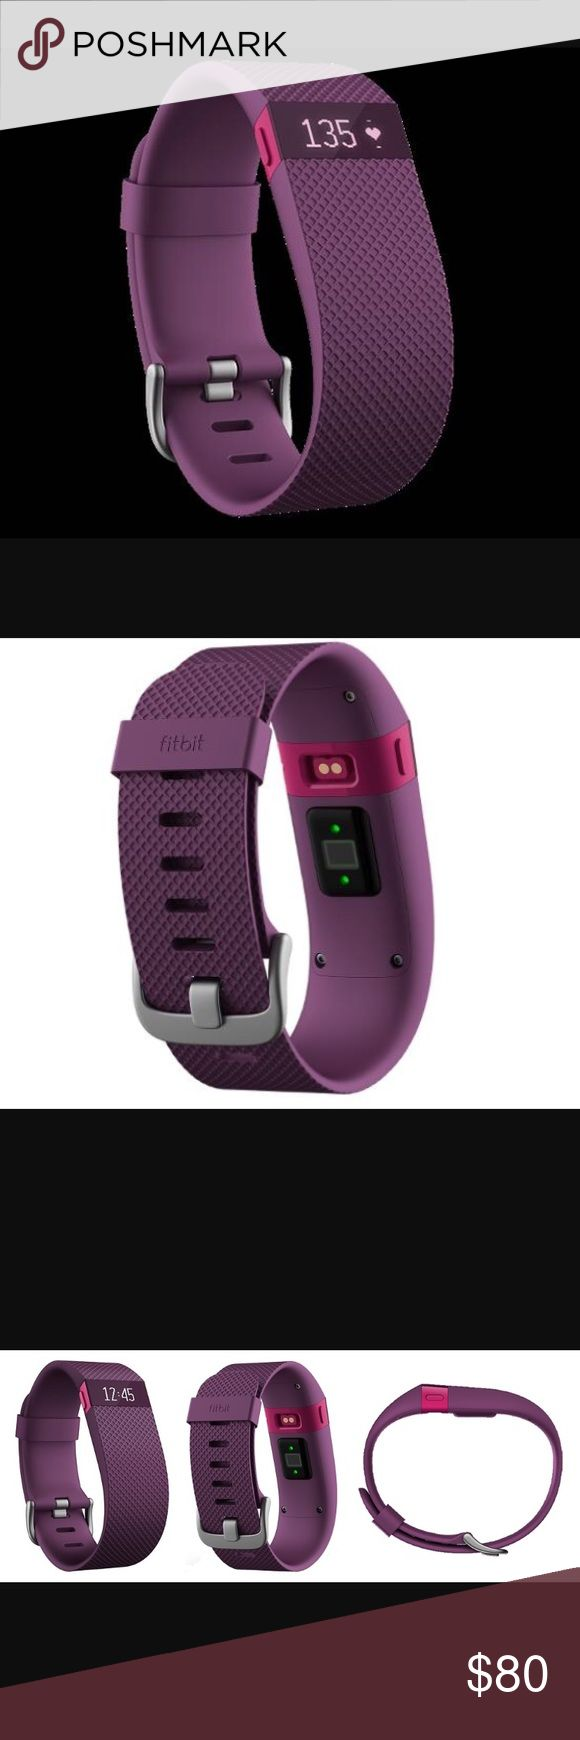 Fitbit Charge HR Fitbit Charge HR size large, deep purple.  This is brand new never been worn, comes with charging cable and program toggle.  Heart rate monitor, exercise tracking, pop-up caller if if synced to your smart phone.  Comes in Fitbit's replacement packaging (I damaged my original and they replaced it within the 1 year warranty!  I decided to go with the new Alta model so I'm selling this replacement.). Priced very competitively to sell!  Price is Firm 😉! Fitbit Accessories…